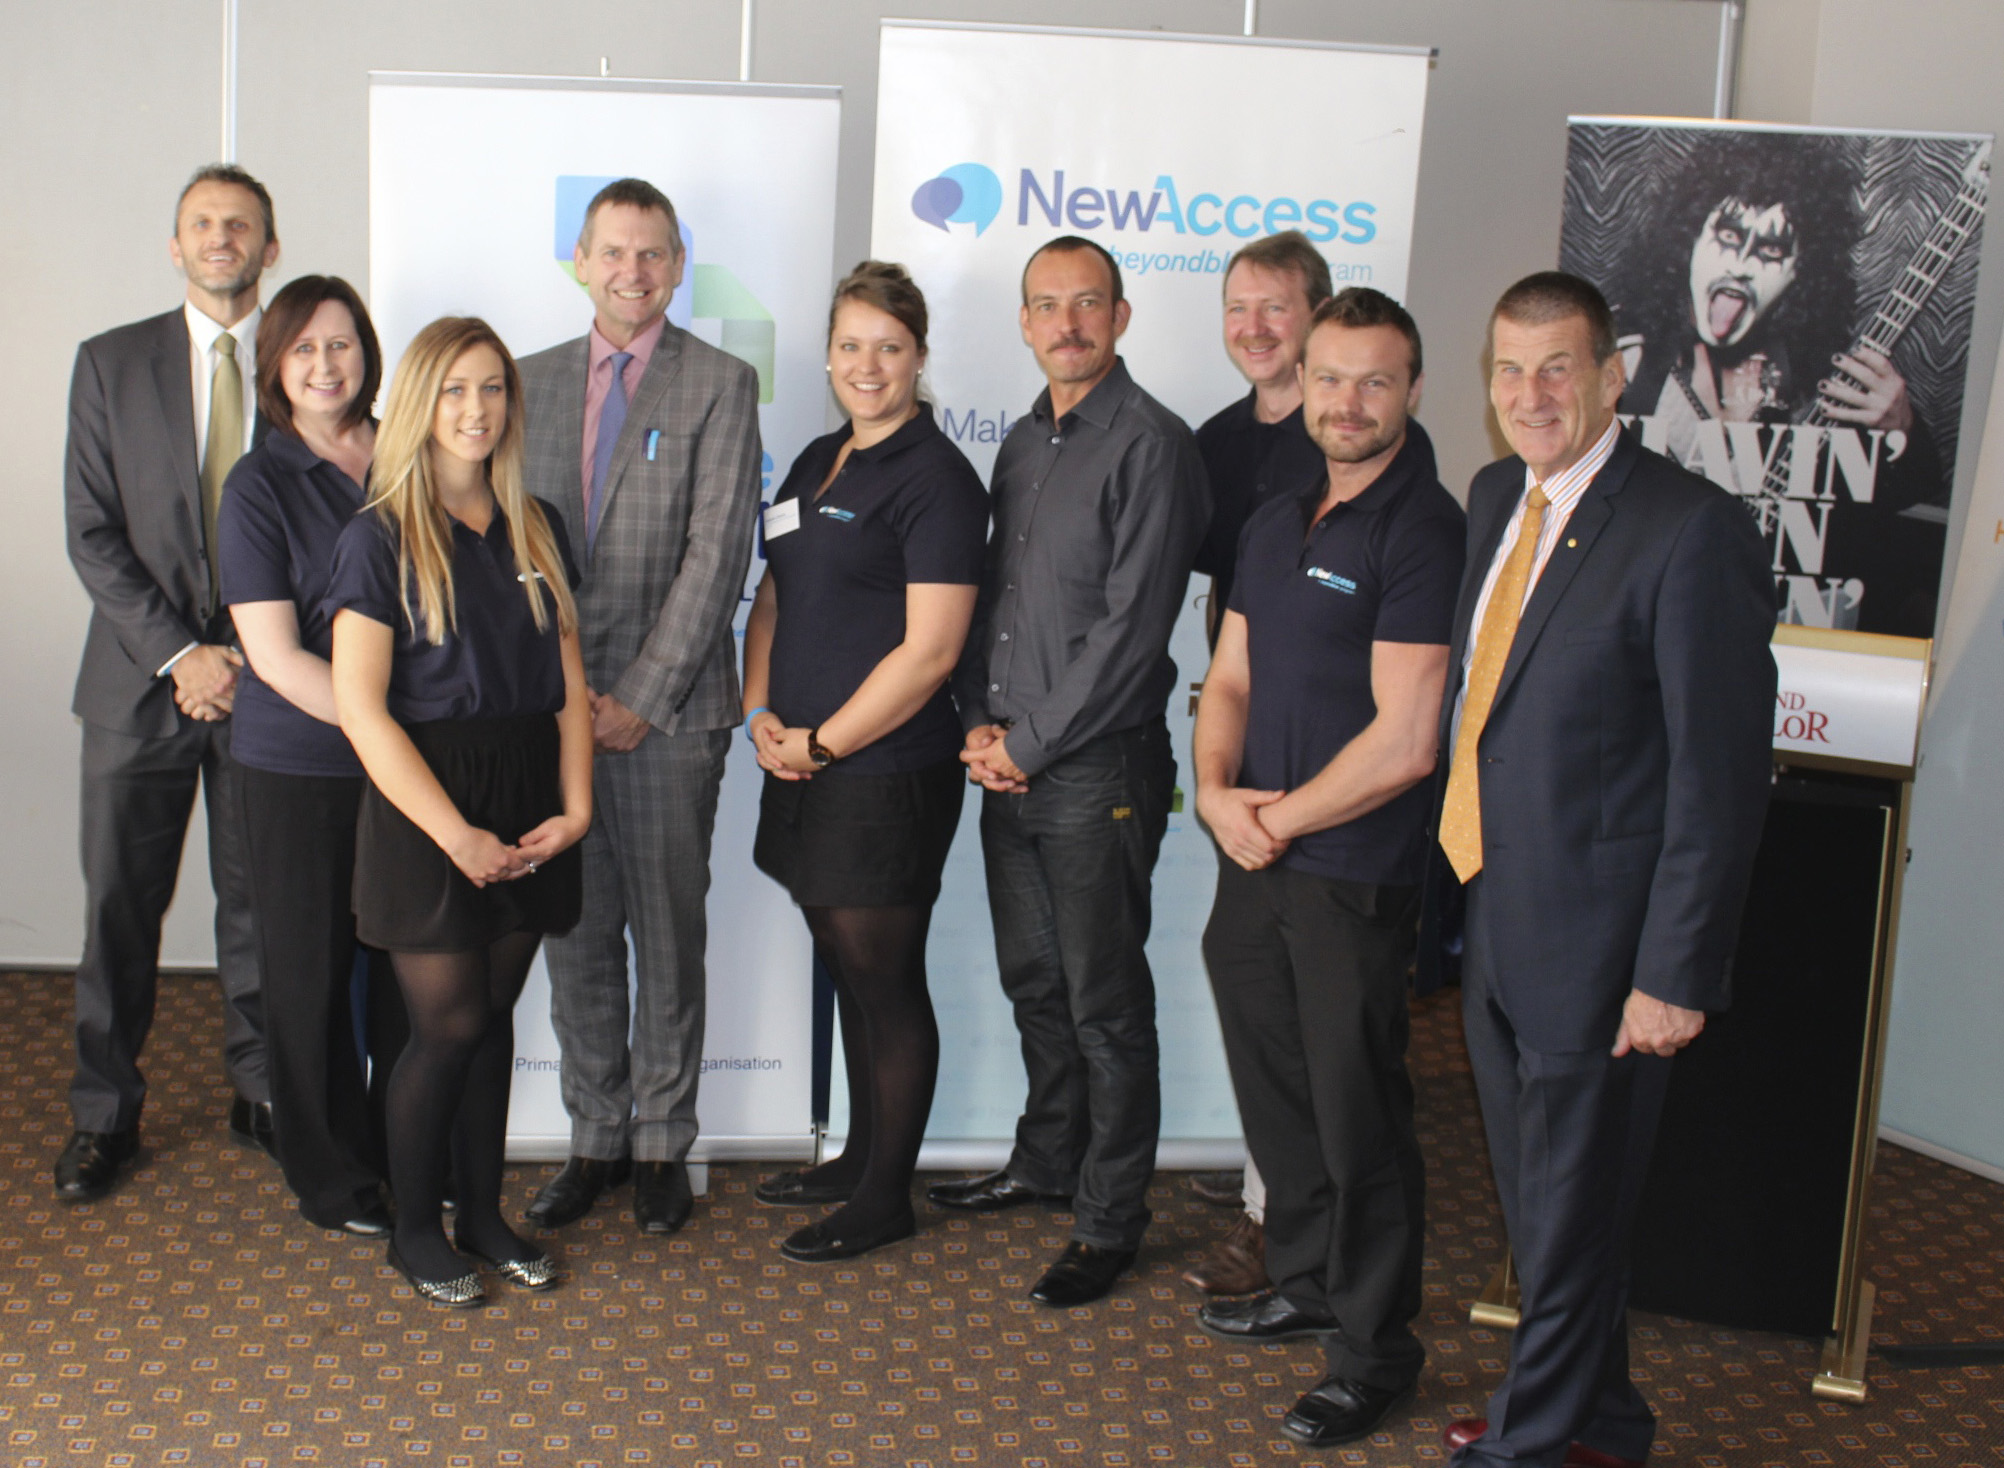 Central Adelaide and Hills Medicare Local, Movember and Beyond Blue launch NewAccess in Adelaide.